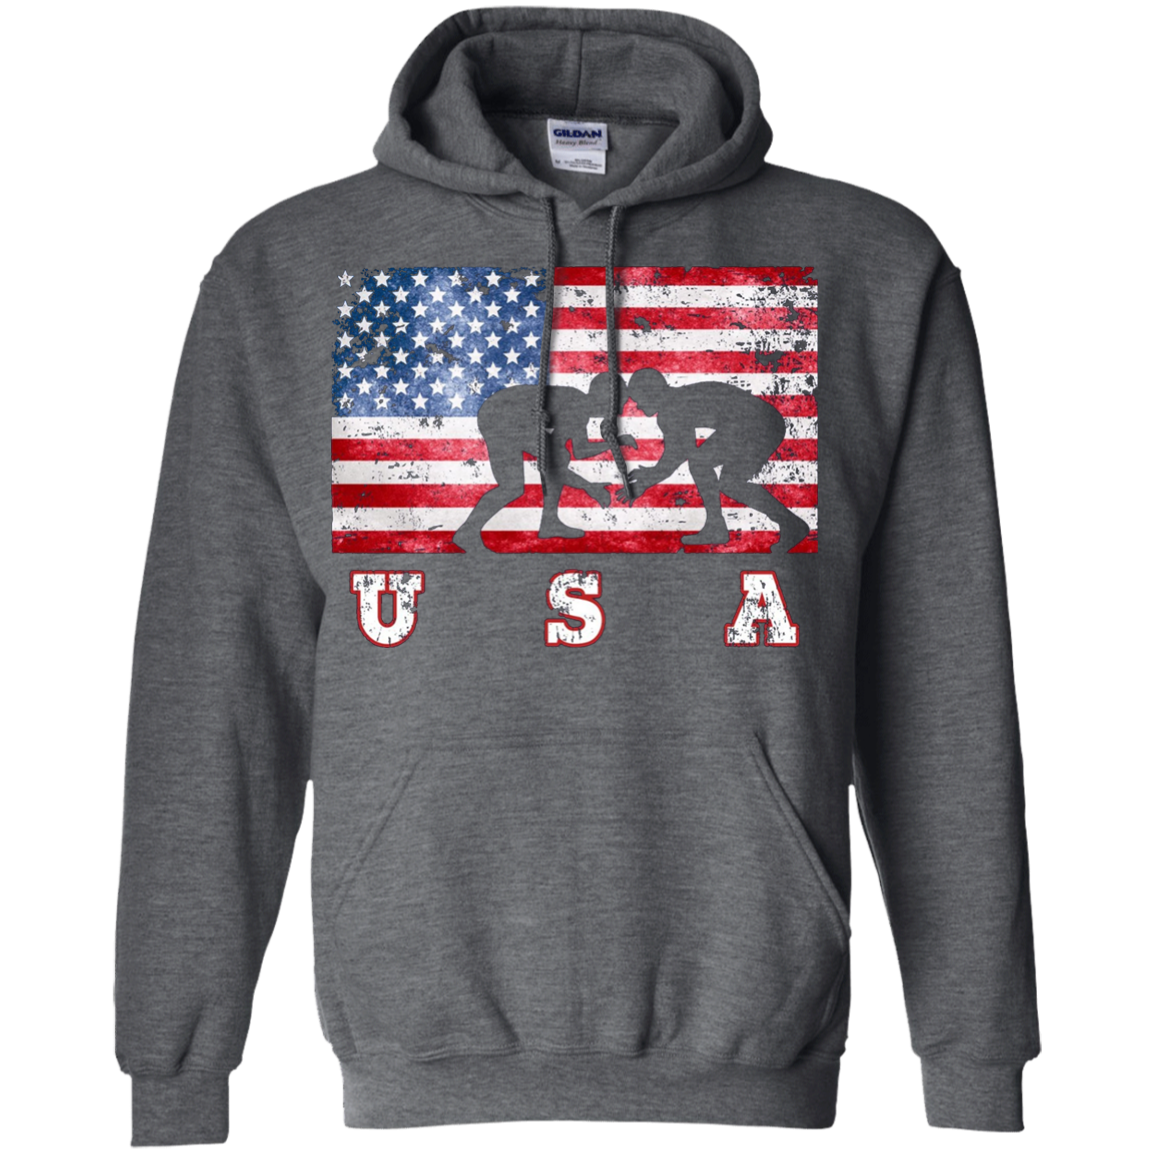 American Flag Wrestling Shirt, Team Training, USA Flag